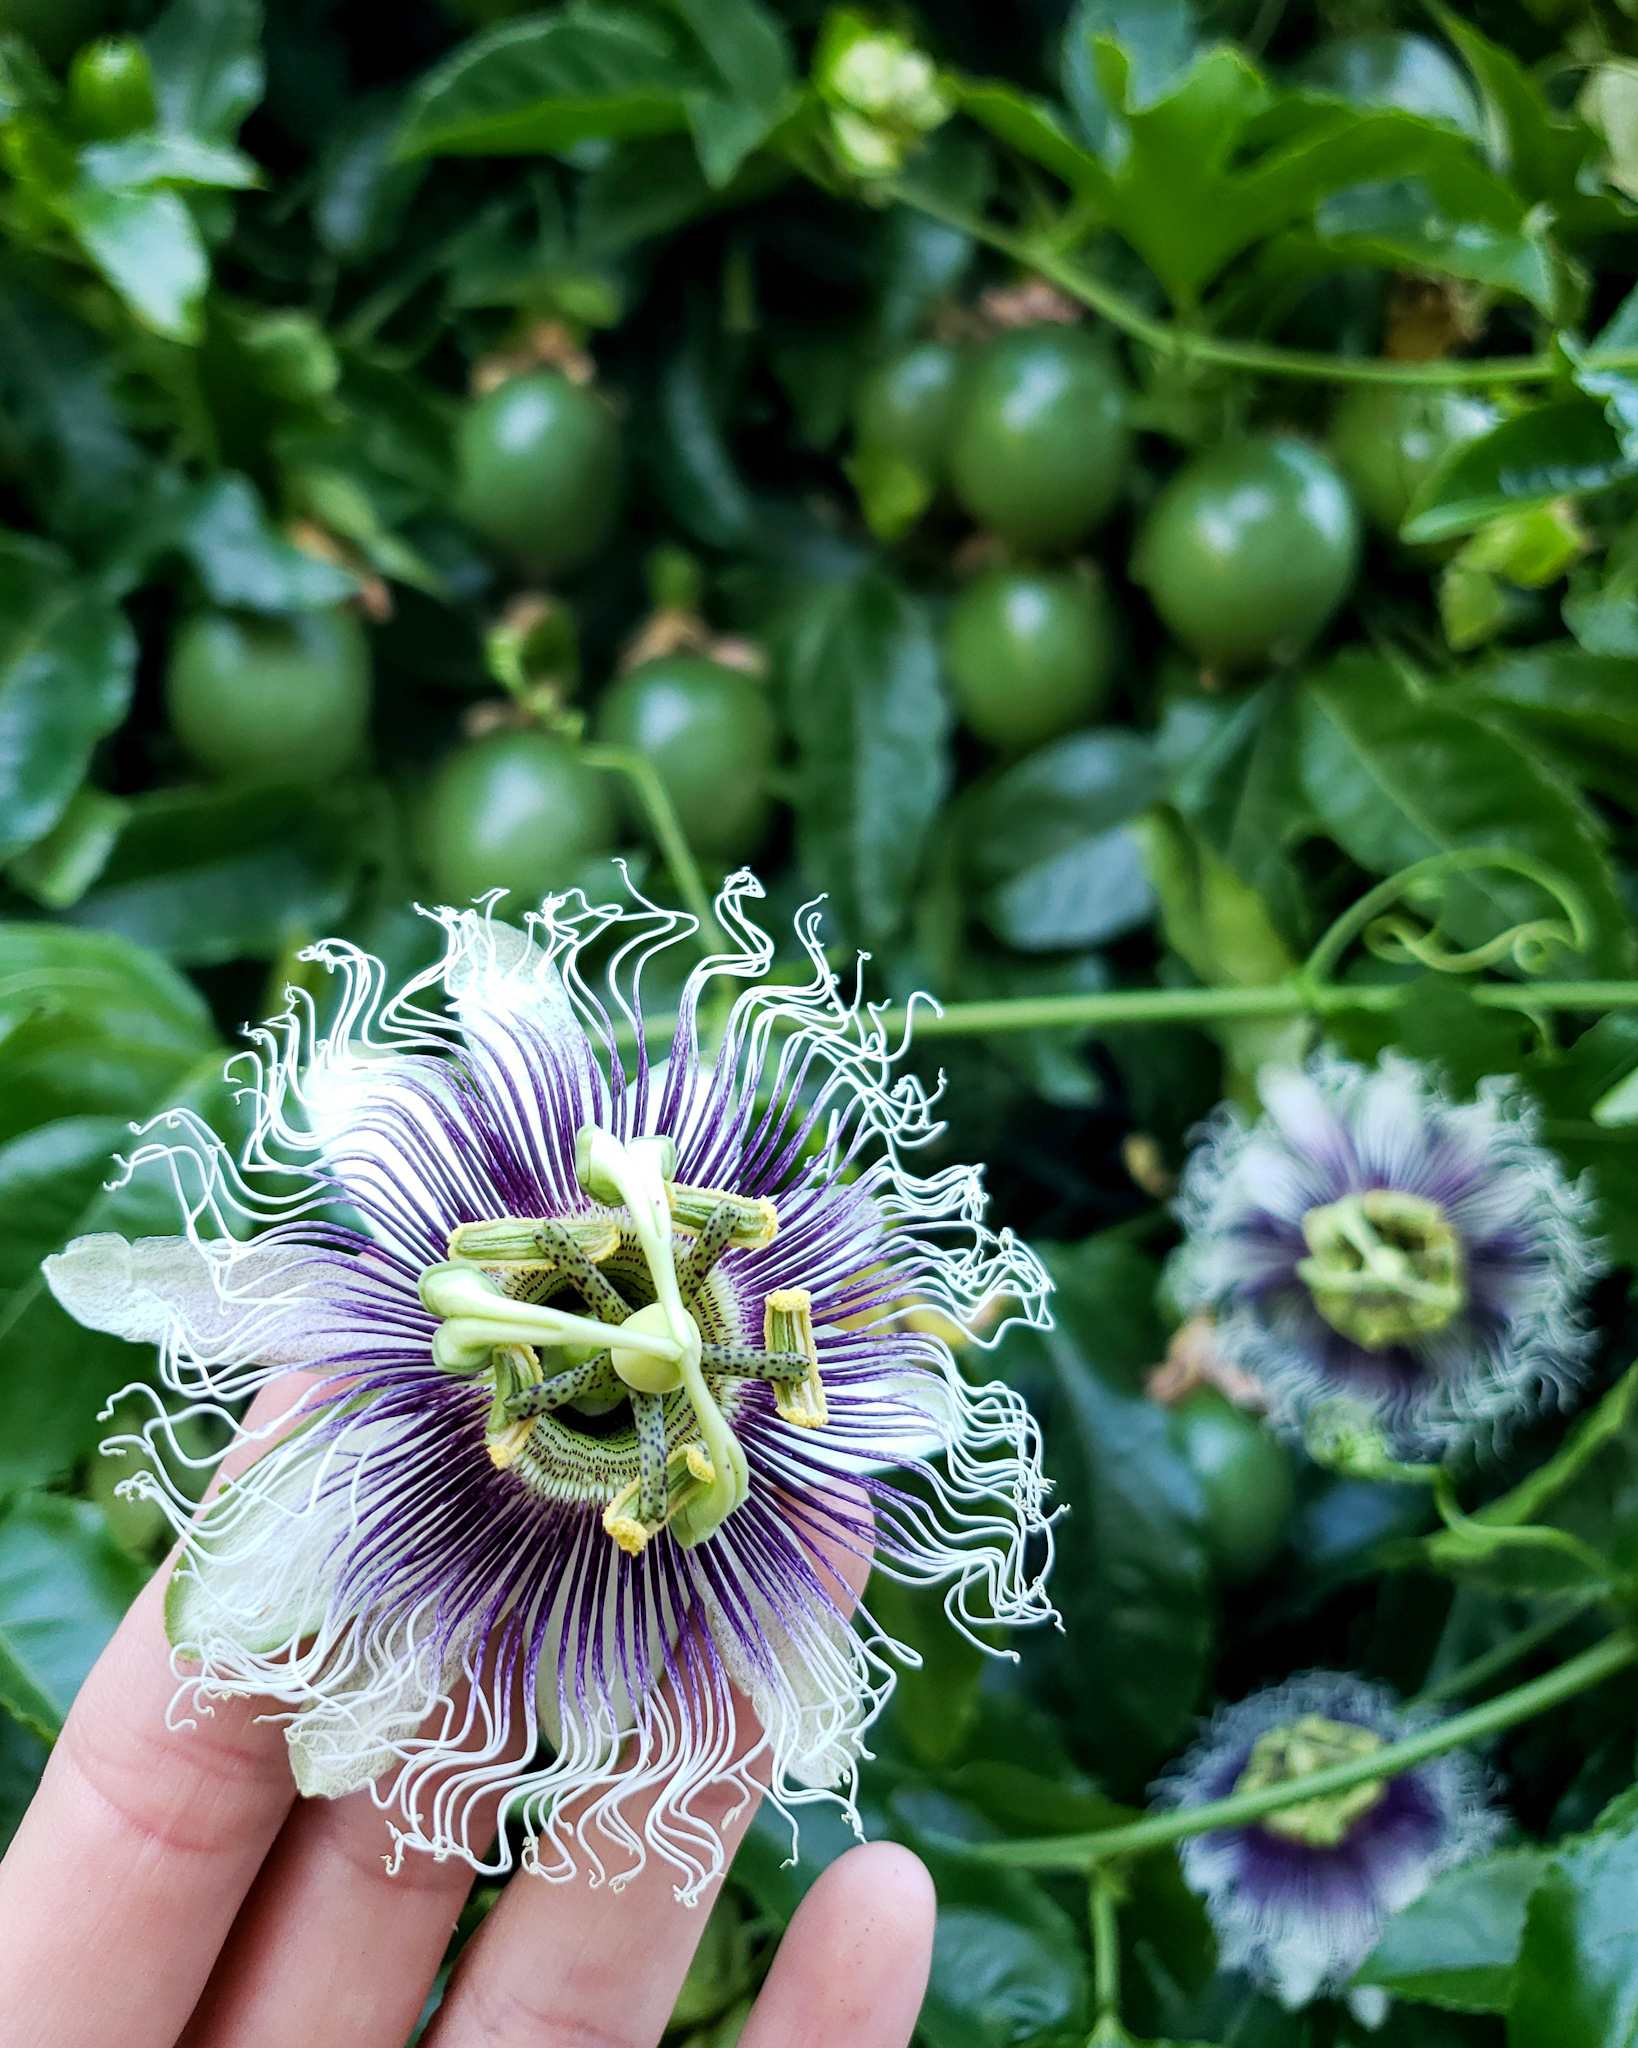 How To Grow Purple Passion Fruit Vs Maypops The Ultimate Guide